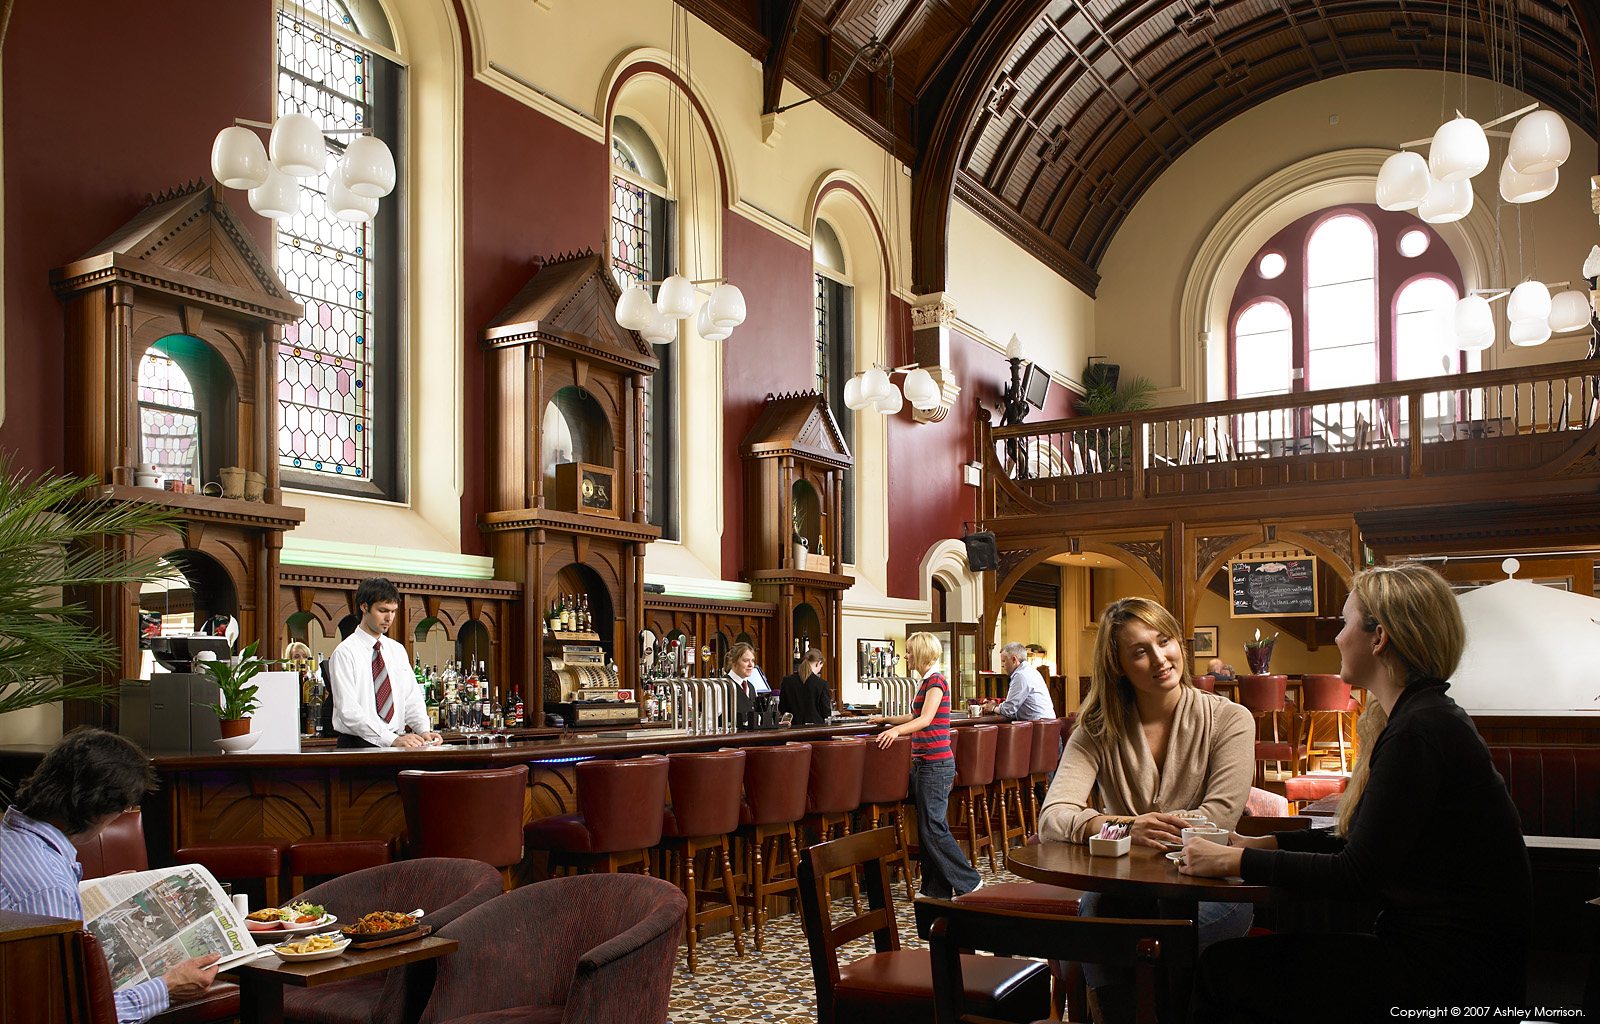 The chapel bar at the Carlton Abbey Hotel in County Kildare by Ashley Morrison.